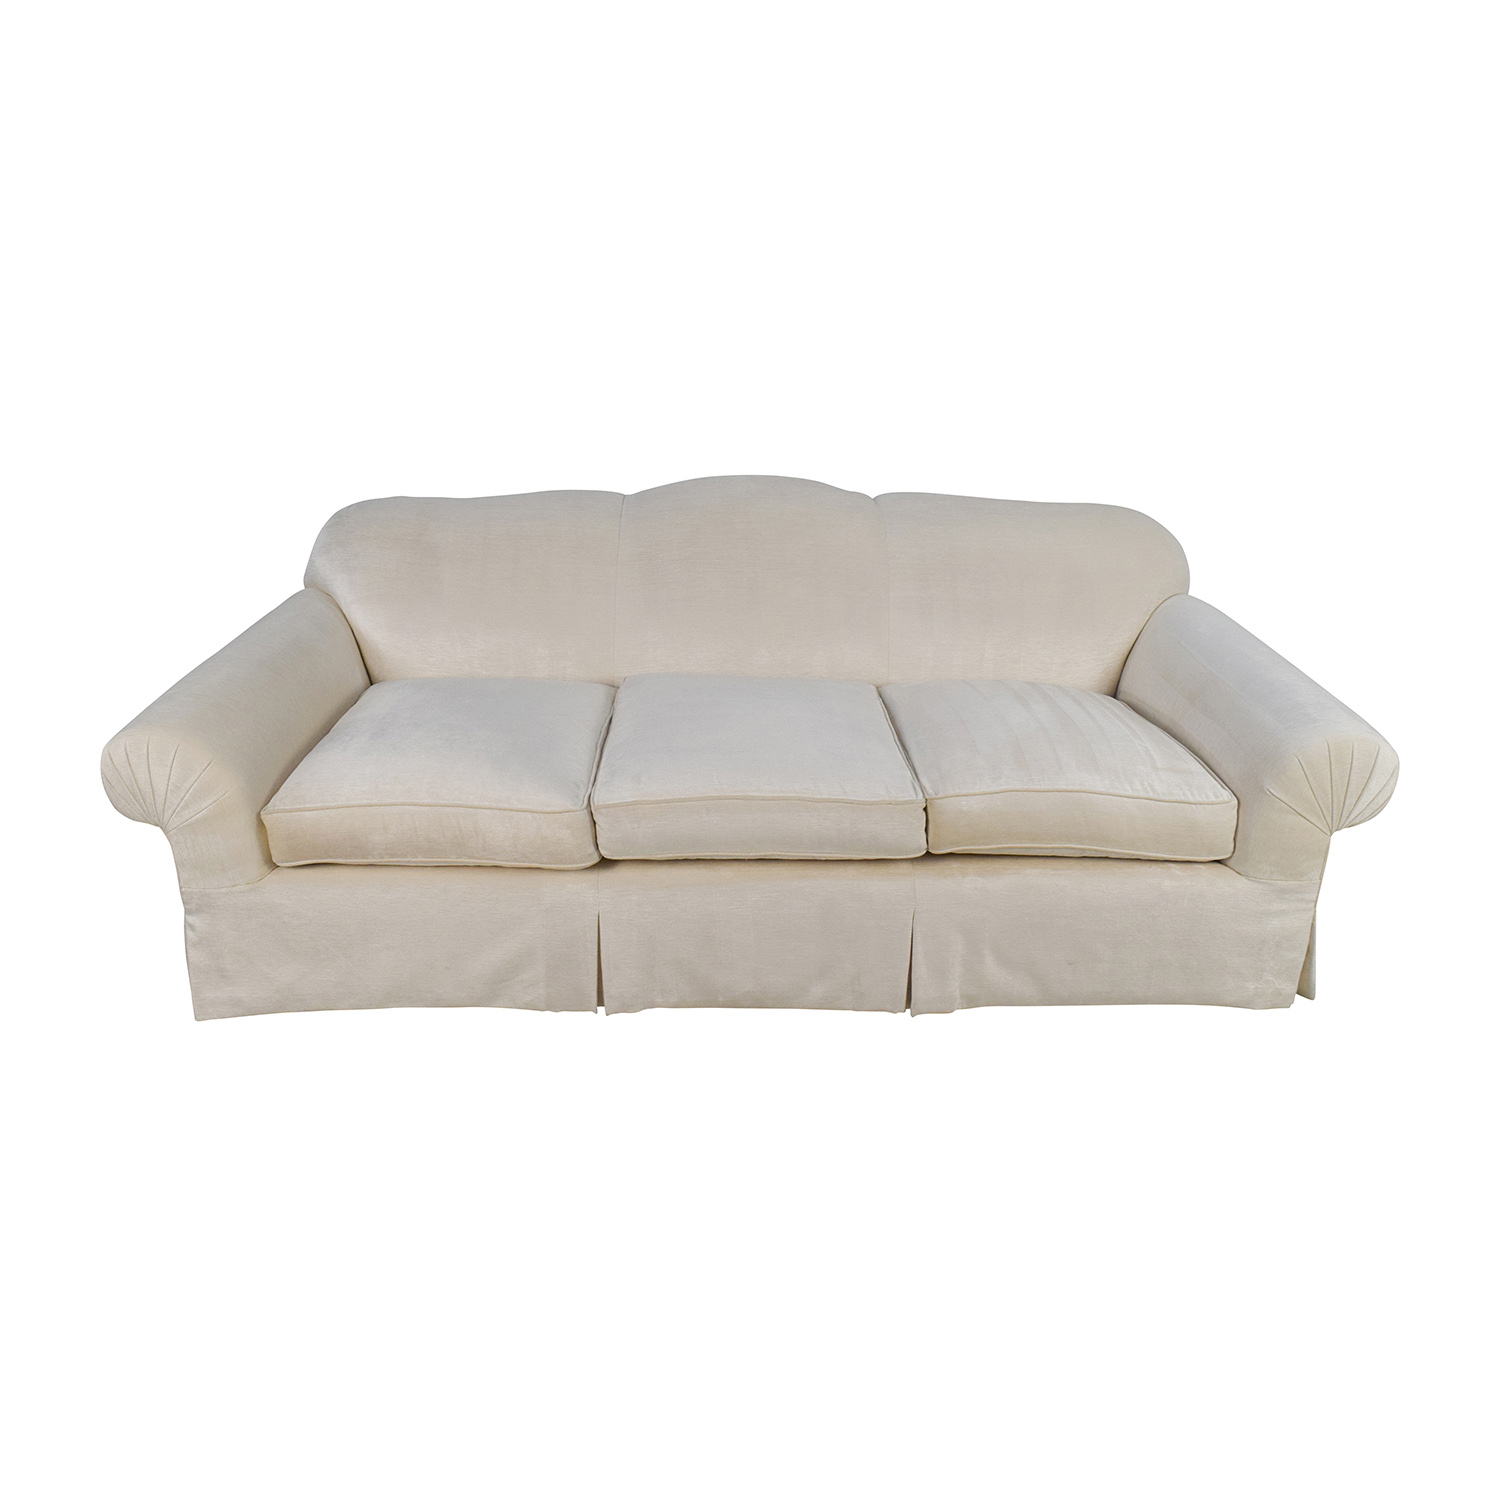 Beige 3 Seater Skirted Sofa with Kravet Fabric